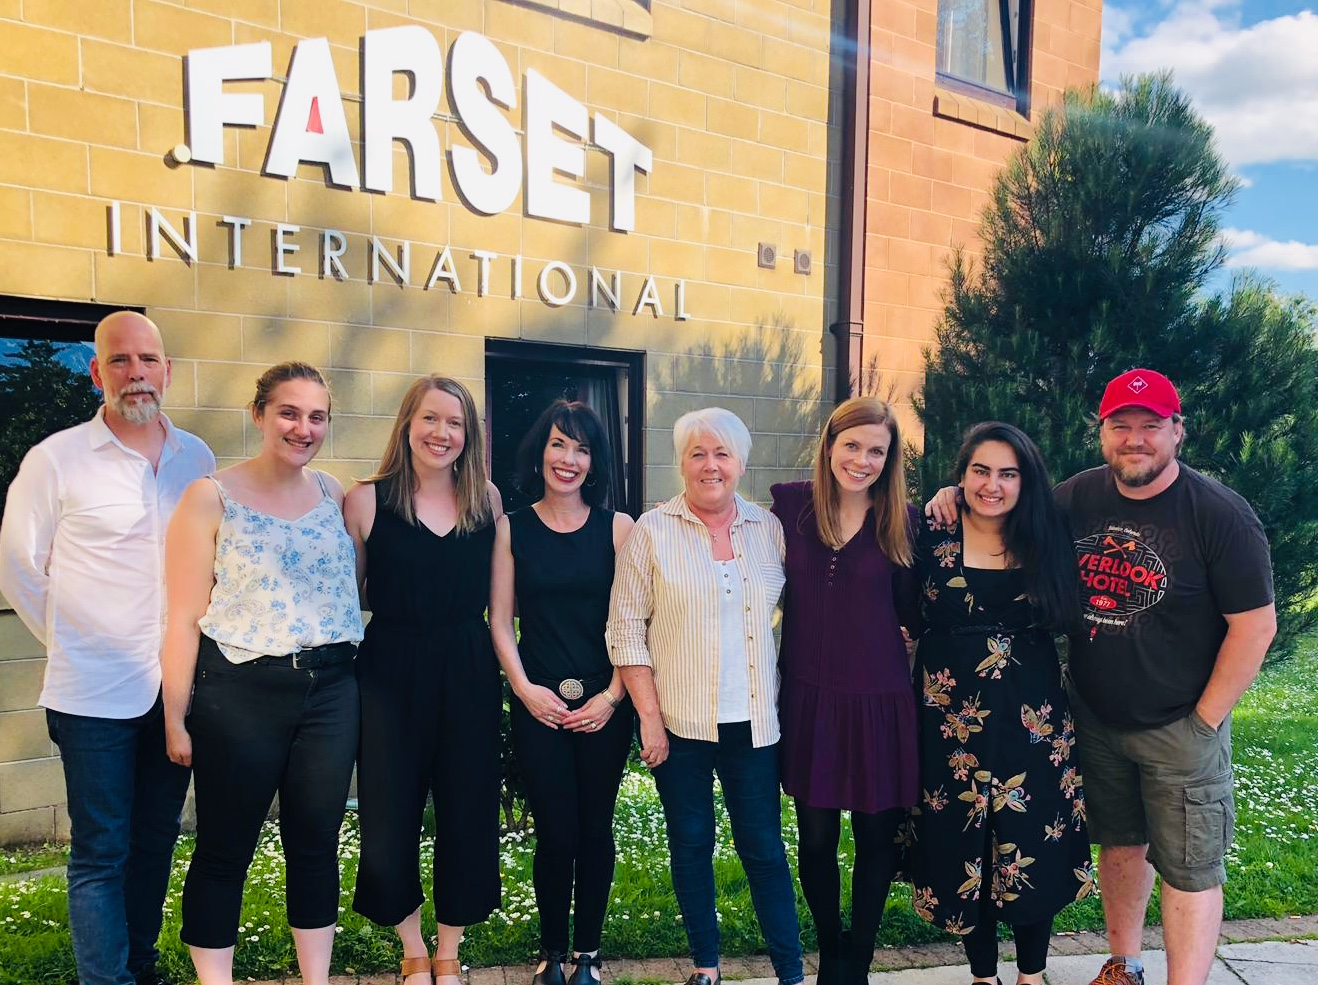 From left: Dr. Peter Twohig, Michaela Peters, Emily Anderson, Bridget Brownlow, Ruth Quigley of  FARSET International , Dr. Bonnie Weir, Hira Jafri and Dr. Ashley Carver.